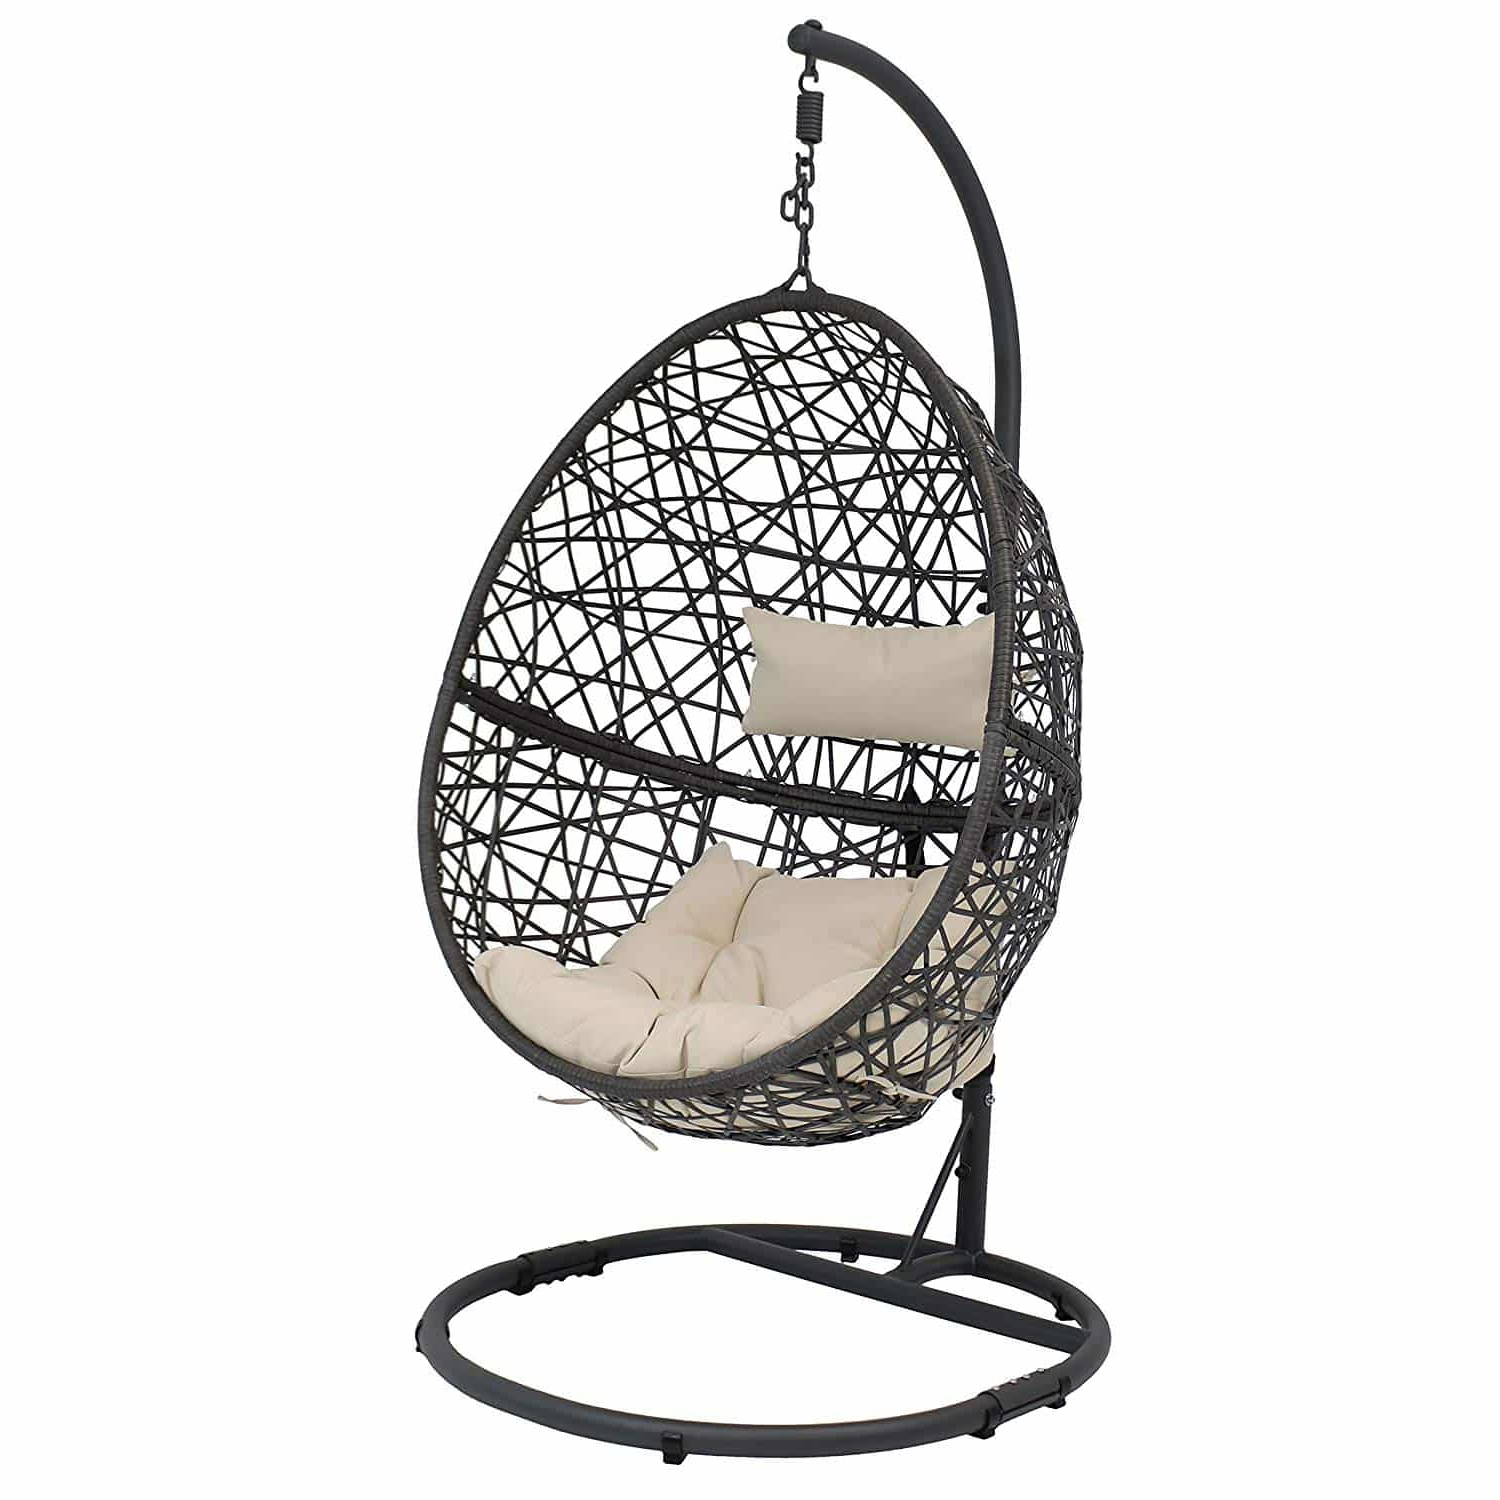 Outdoor Wicker Plastic Tear Porch Swings With Stand Throughout Most Current 10 Best Egg Chairs Of 2020 (Review & Guide) – Thebeastreviews (Gallery 28 of 30)